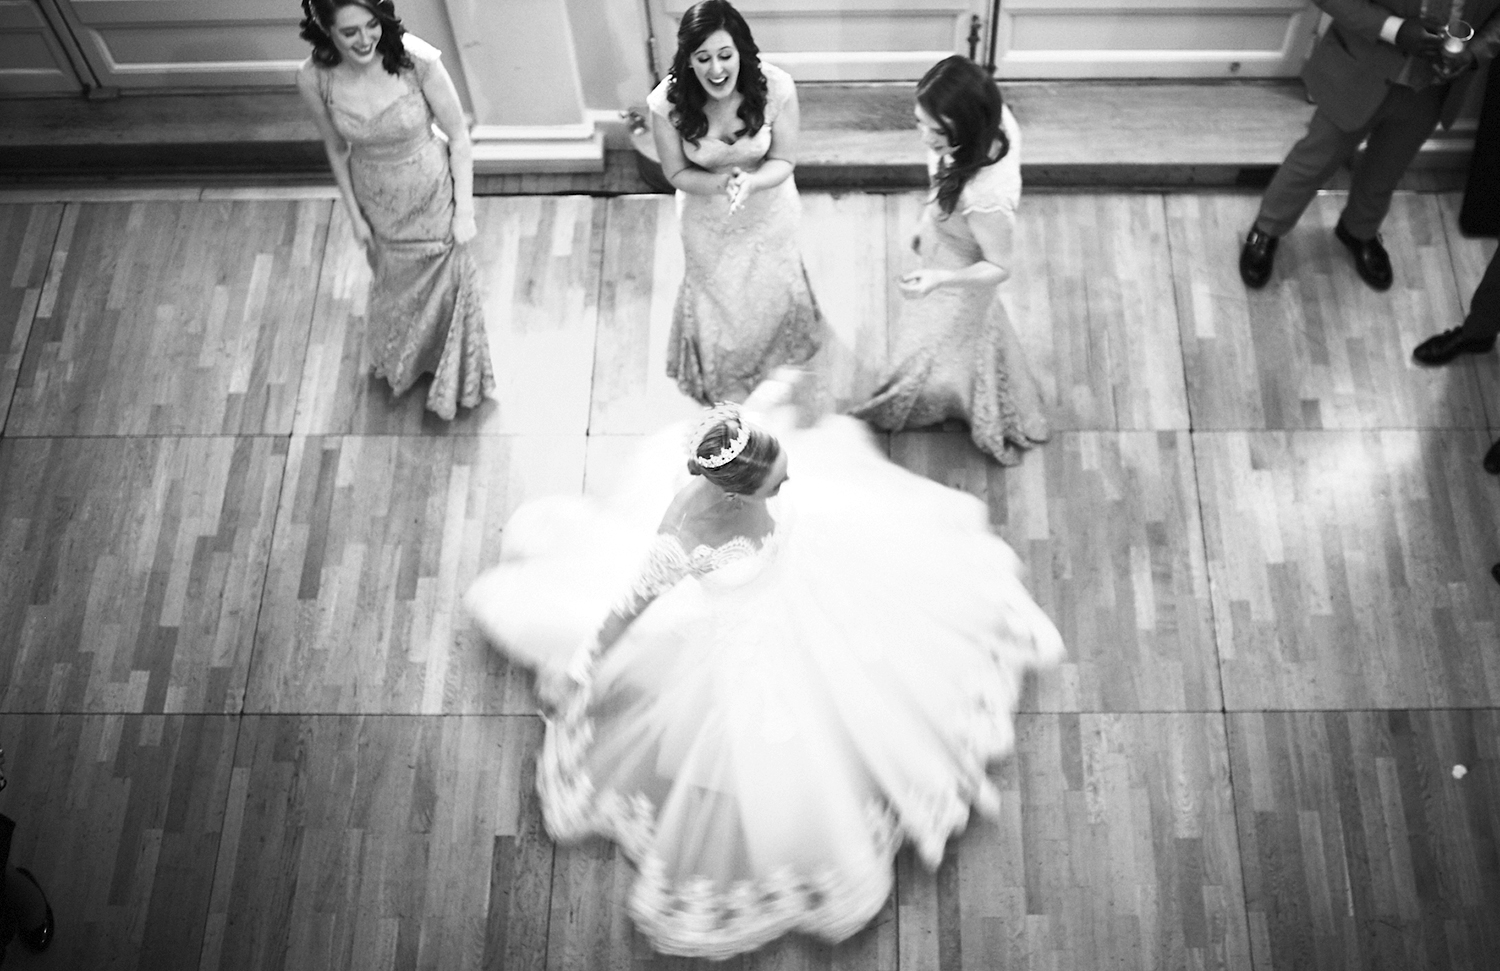 171111_CairnwoodEstateWeddingPhotography_PAWeddingPhotographer_By_BriJohnsonWeddings_0151.jpg